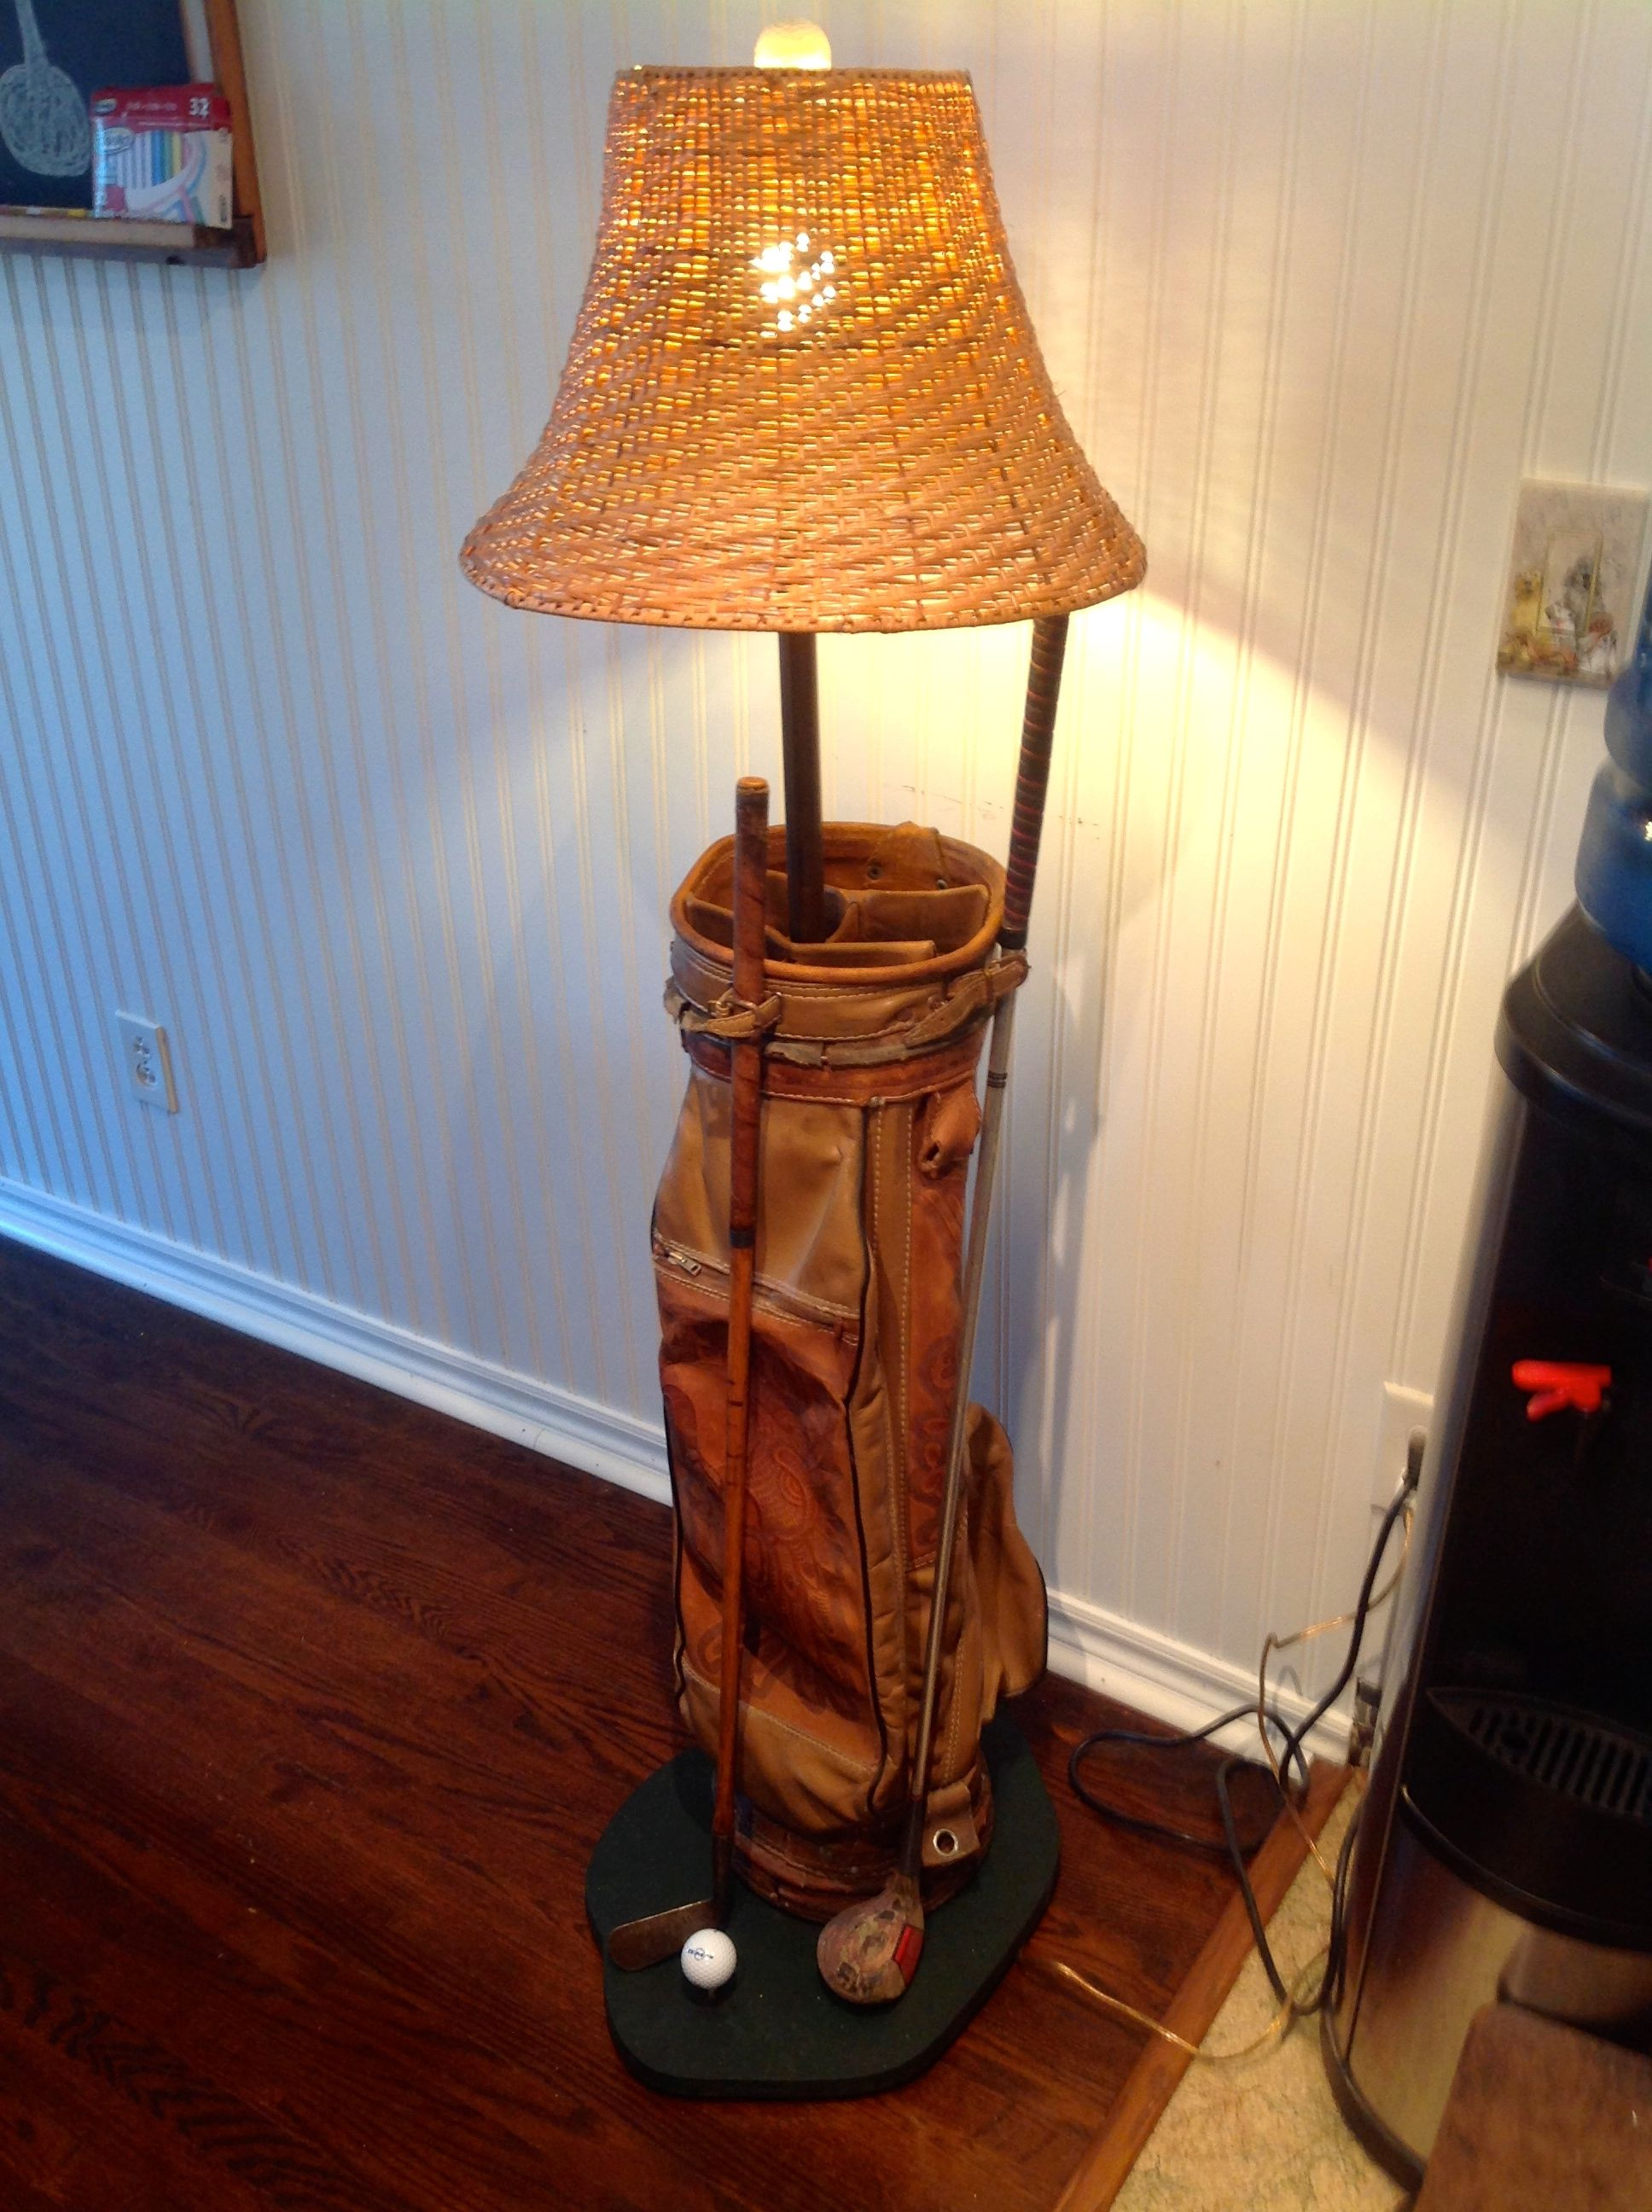 Vintage Golf Bag Lamp Actually Found This In The Garbage It S Leather With